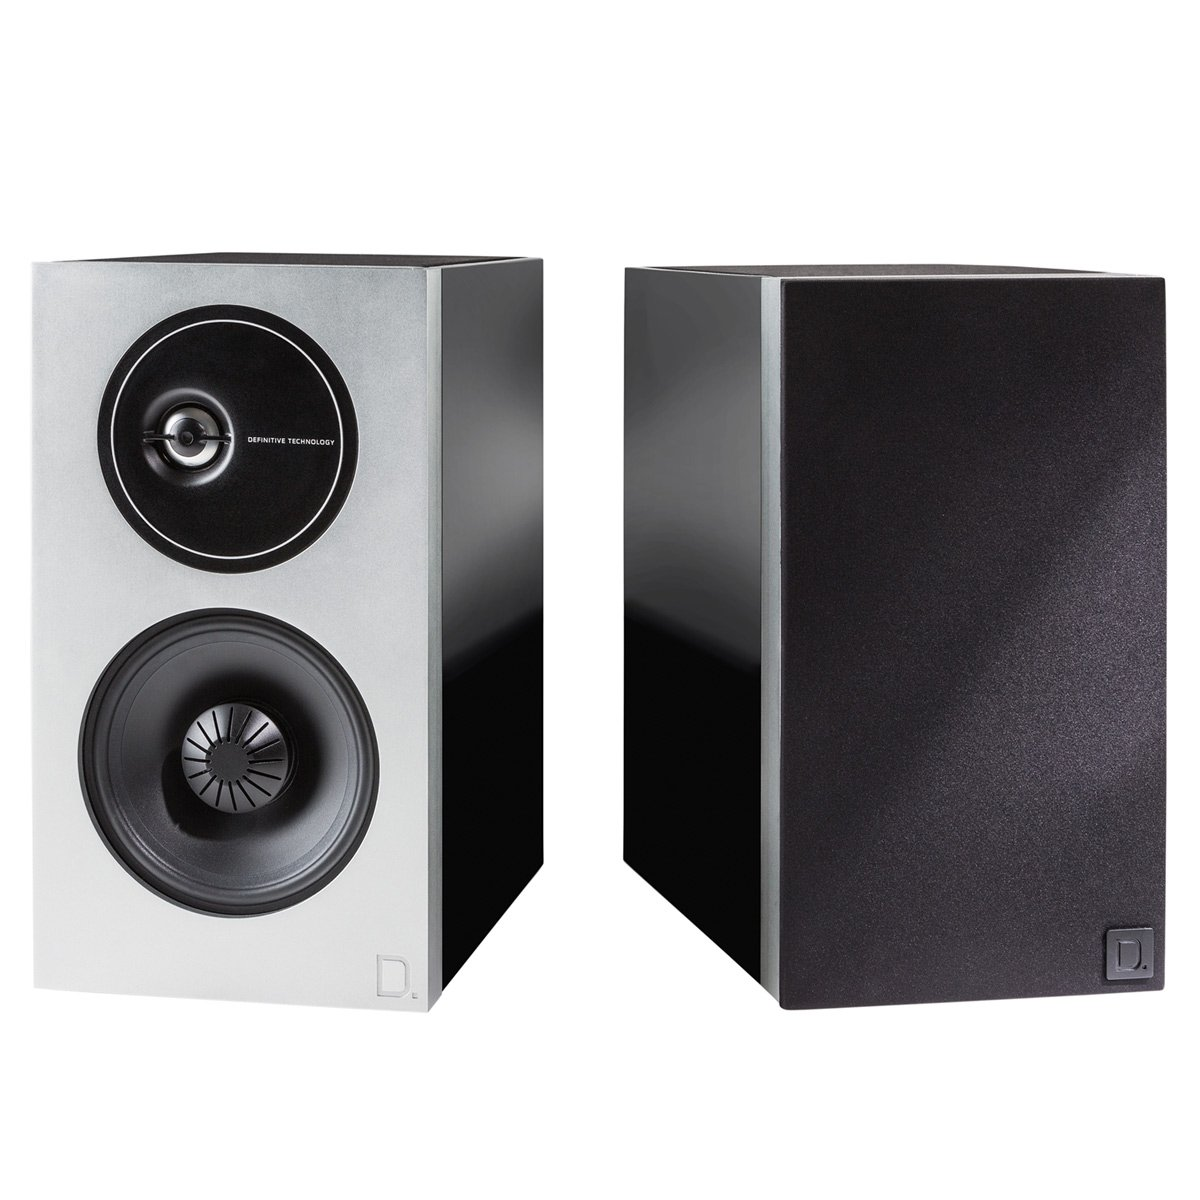 Definitive Technology Demand Series D9 High-Performance Bookshelf Speakers - Pair (Black)